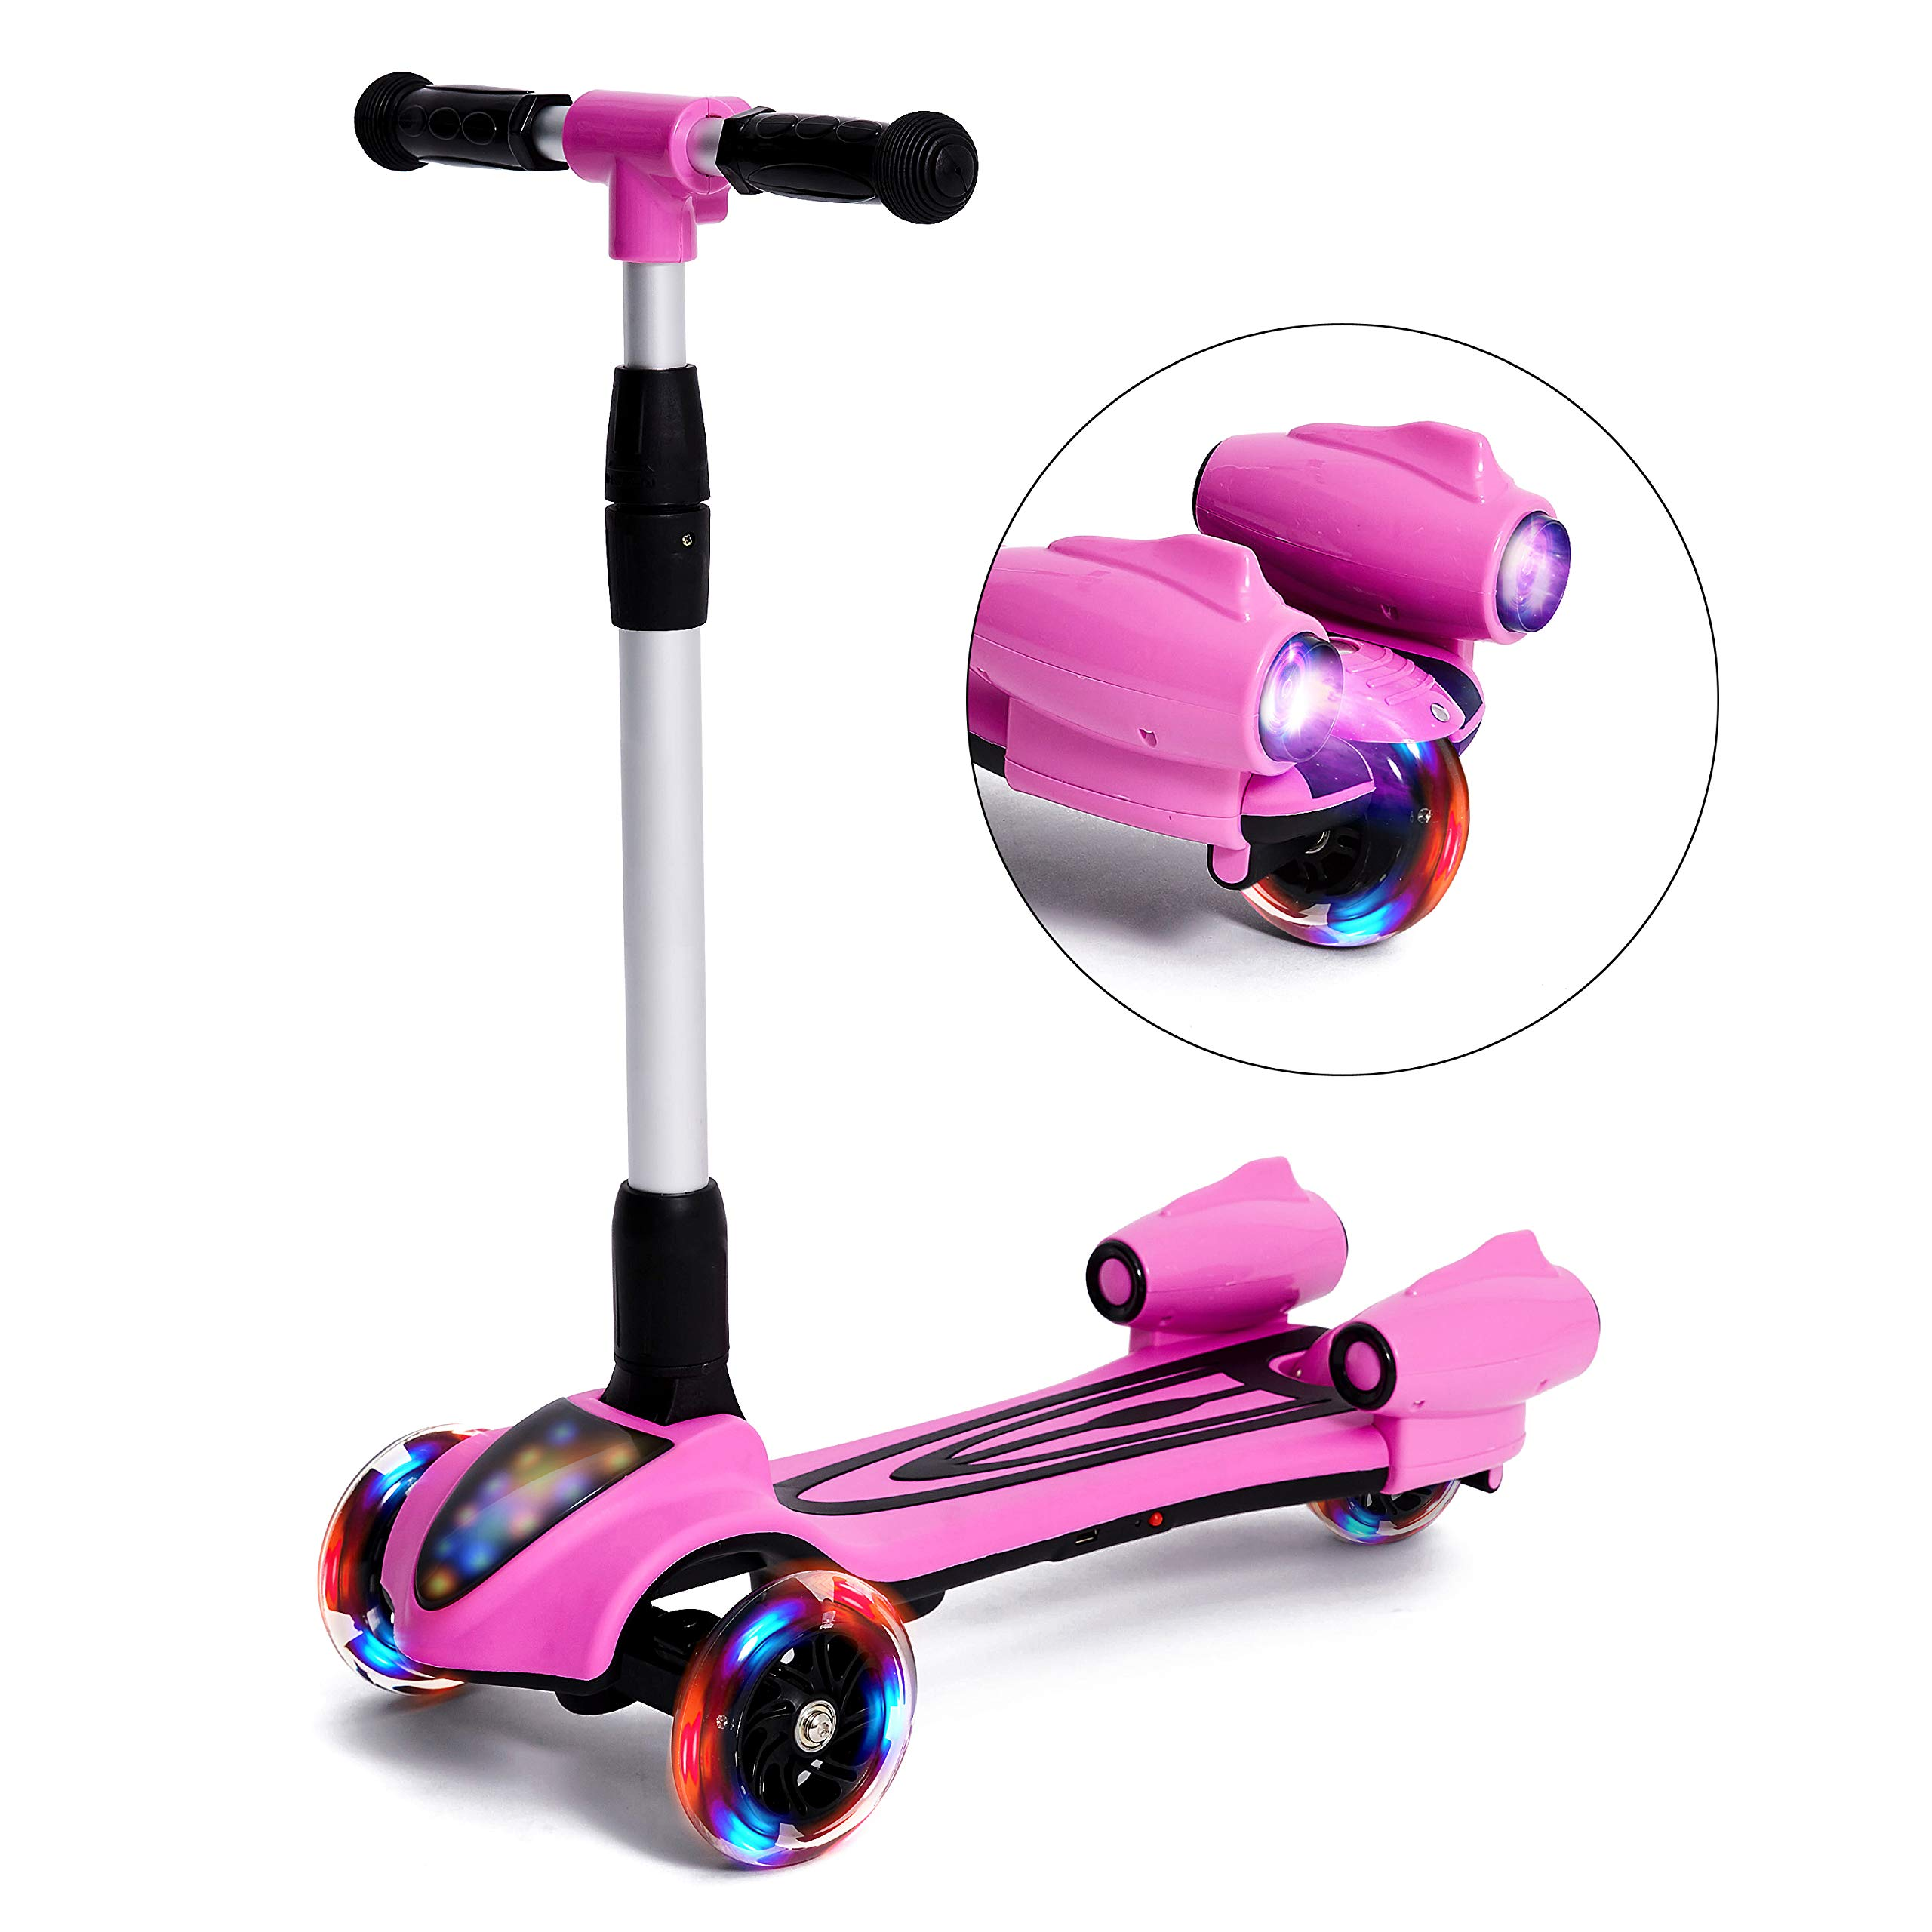 MammyGol Scooters for Kids 3 Wheel Kick Scooter,Folding LED Spray Jet Scooter with Adjustable Height,Flashing PU Wheels and Lean to Steer,Best Gifts for Children Age 3-8 Years Old Pink by MammyGol